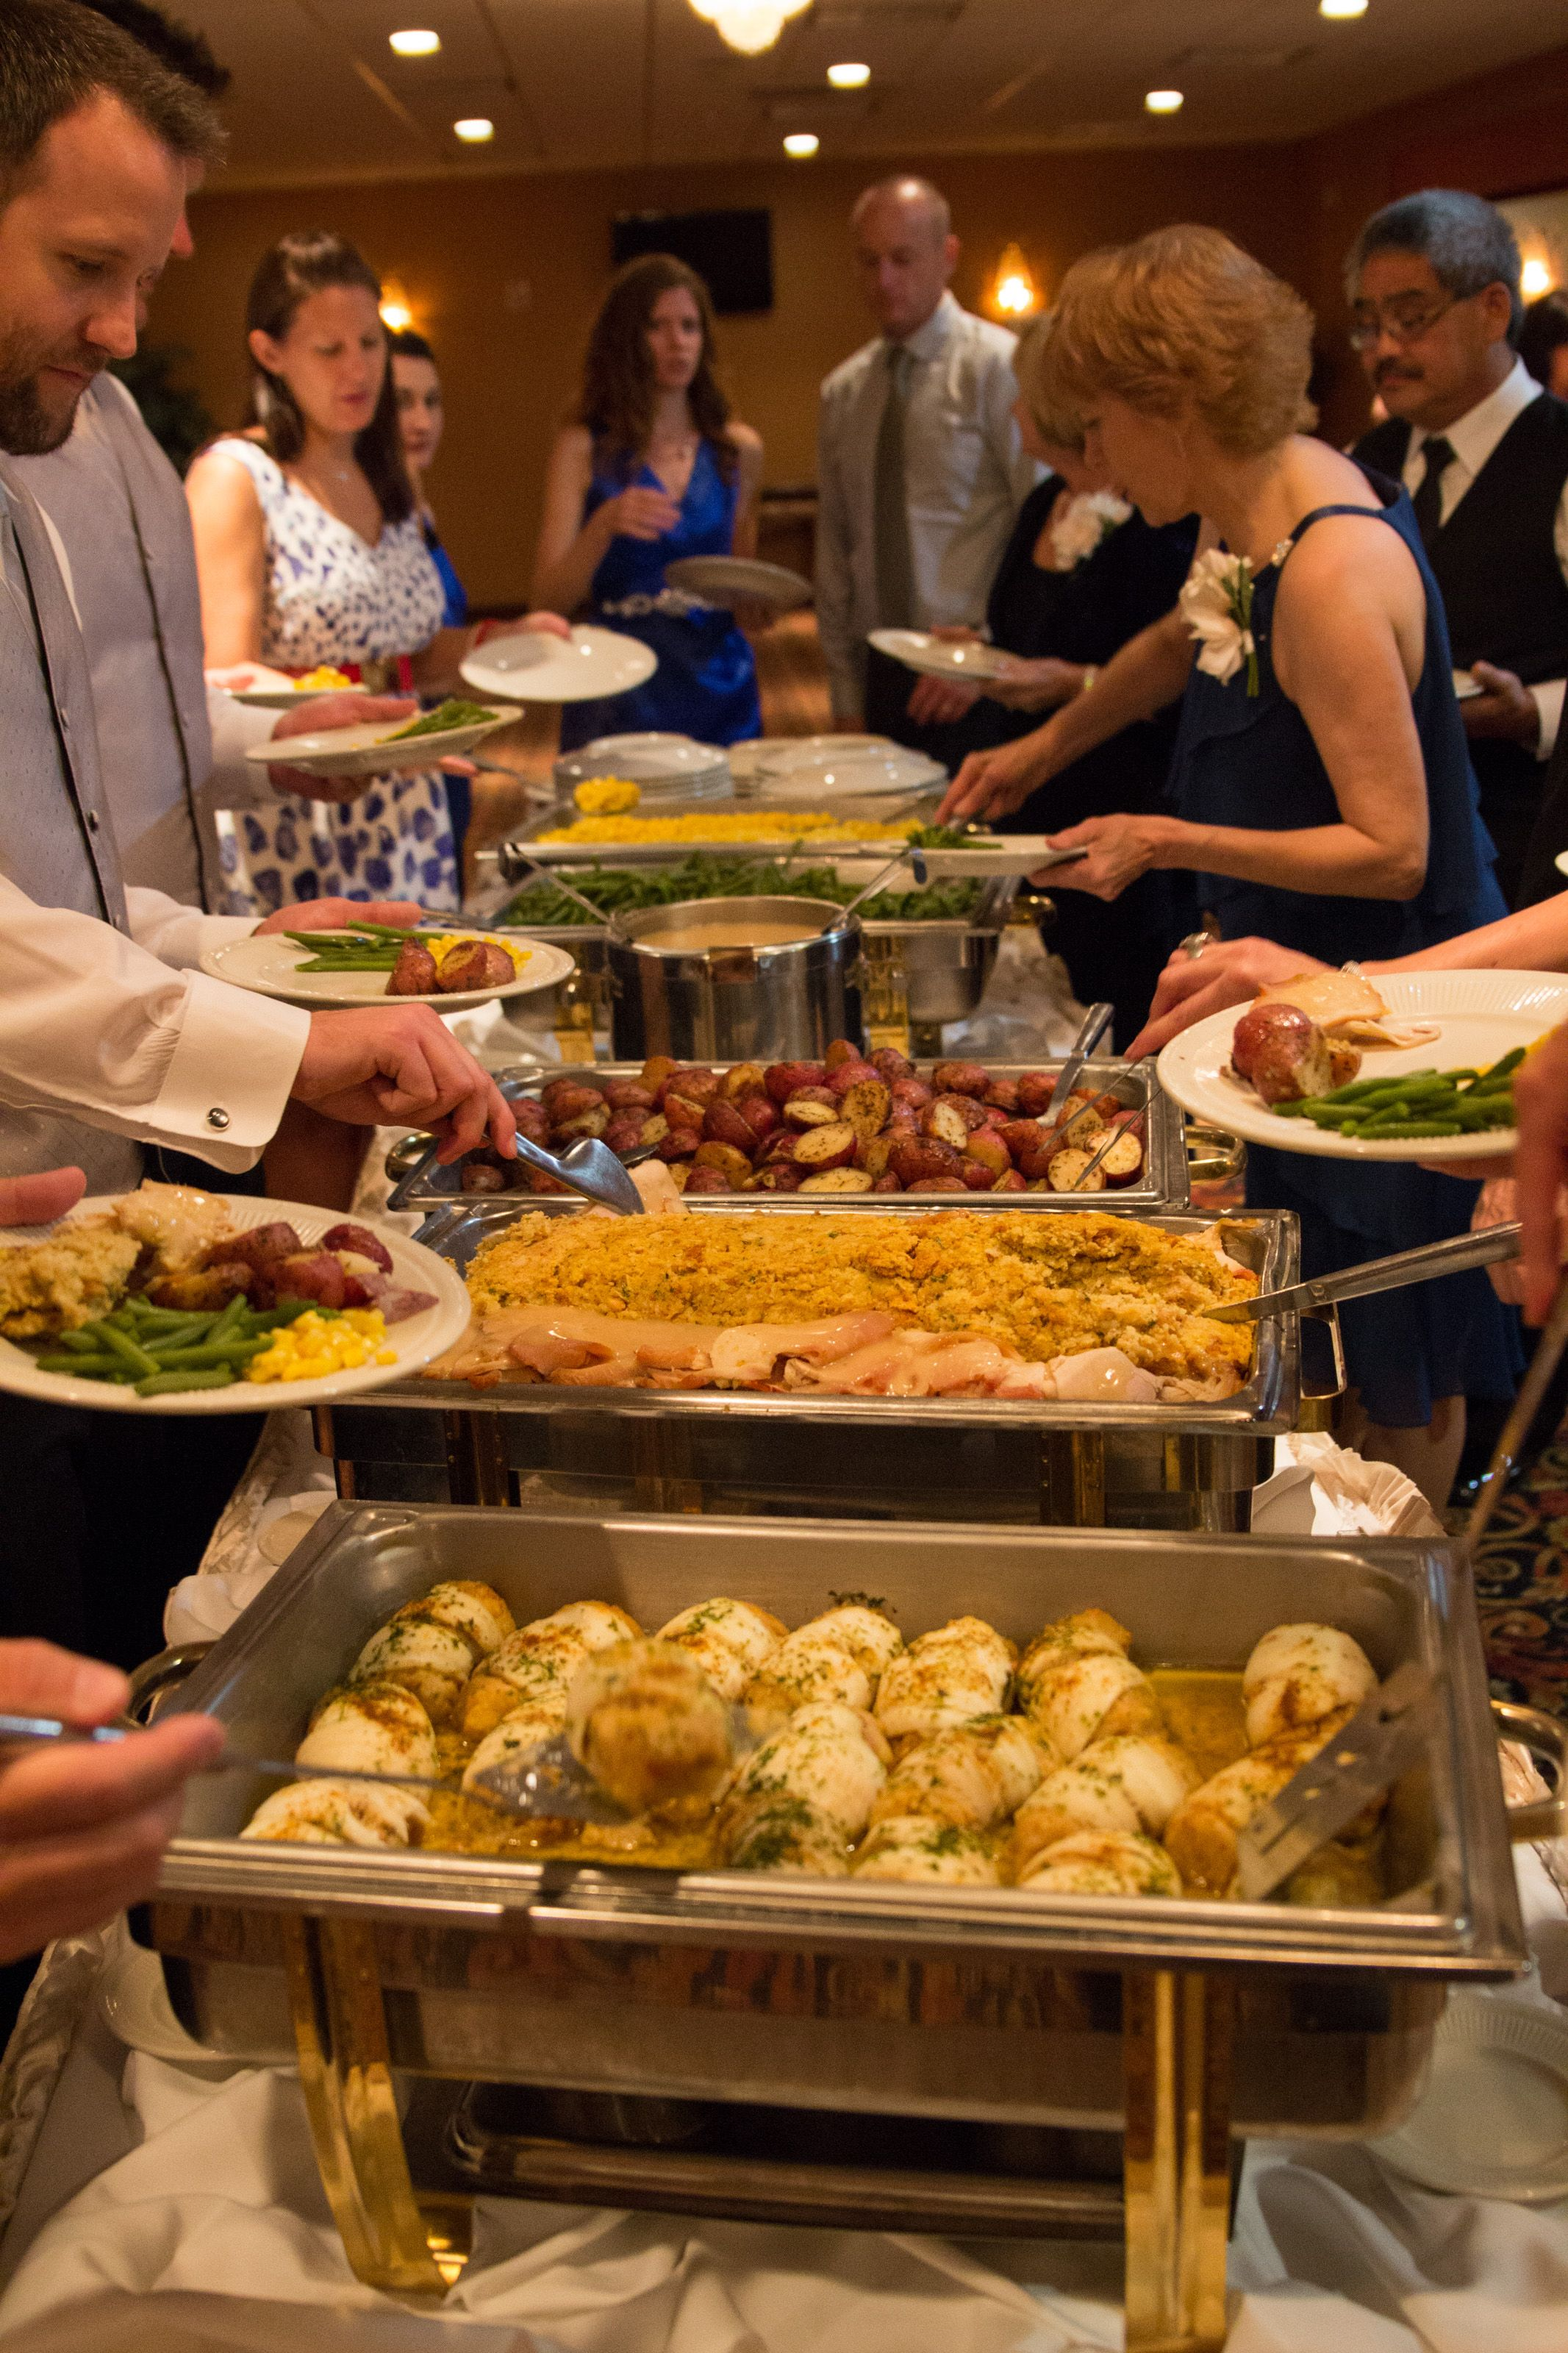 Wedding Reception Food If You Are On A Budget Or Not Find Someone